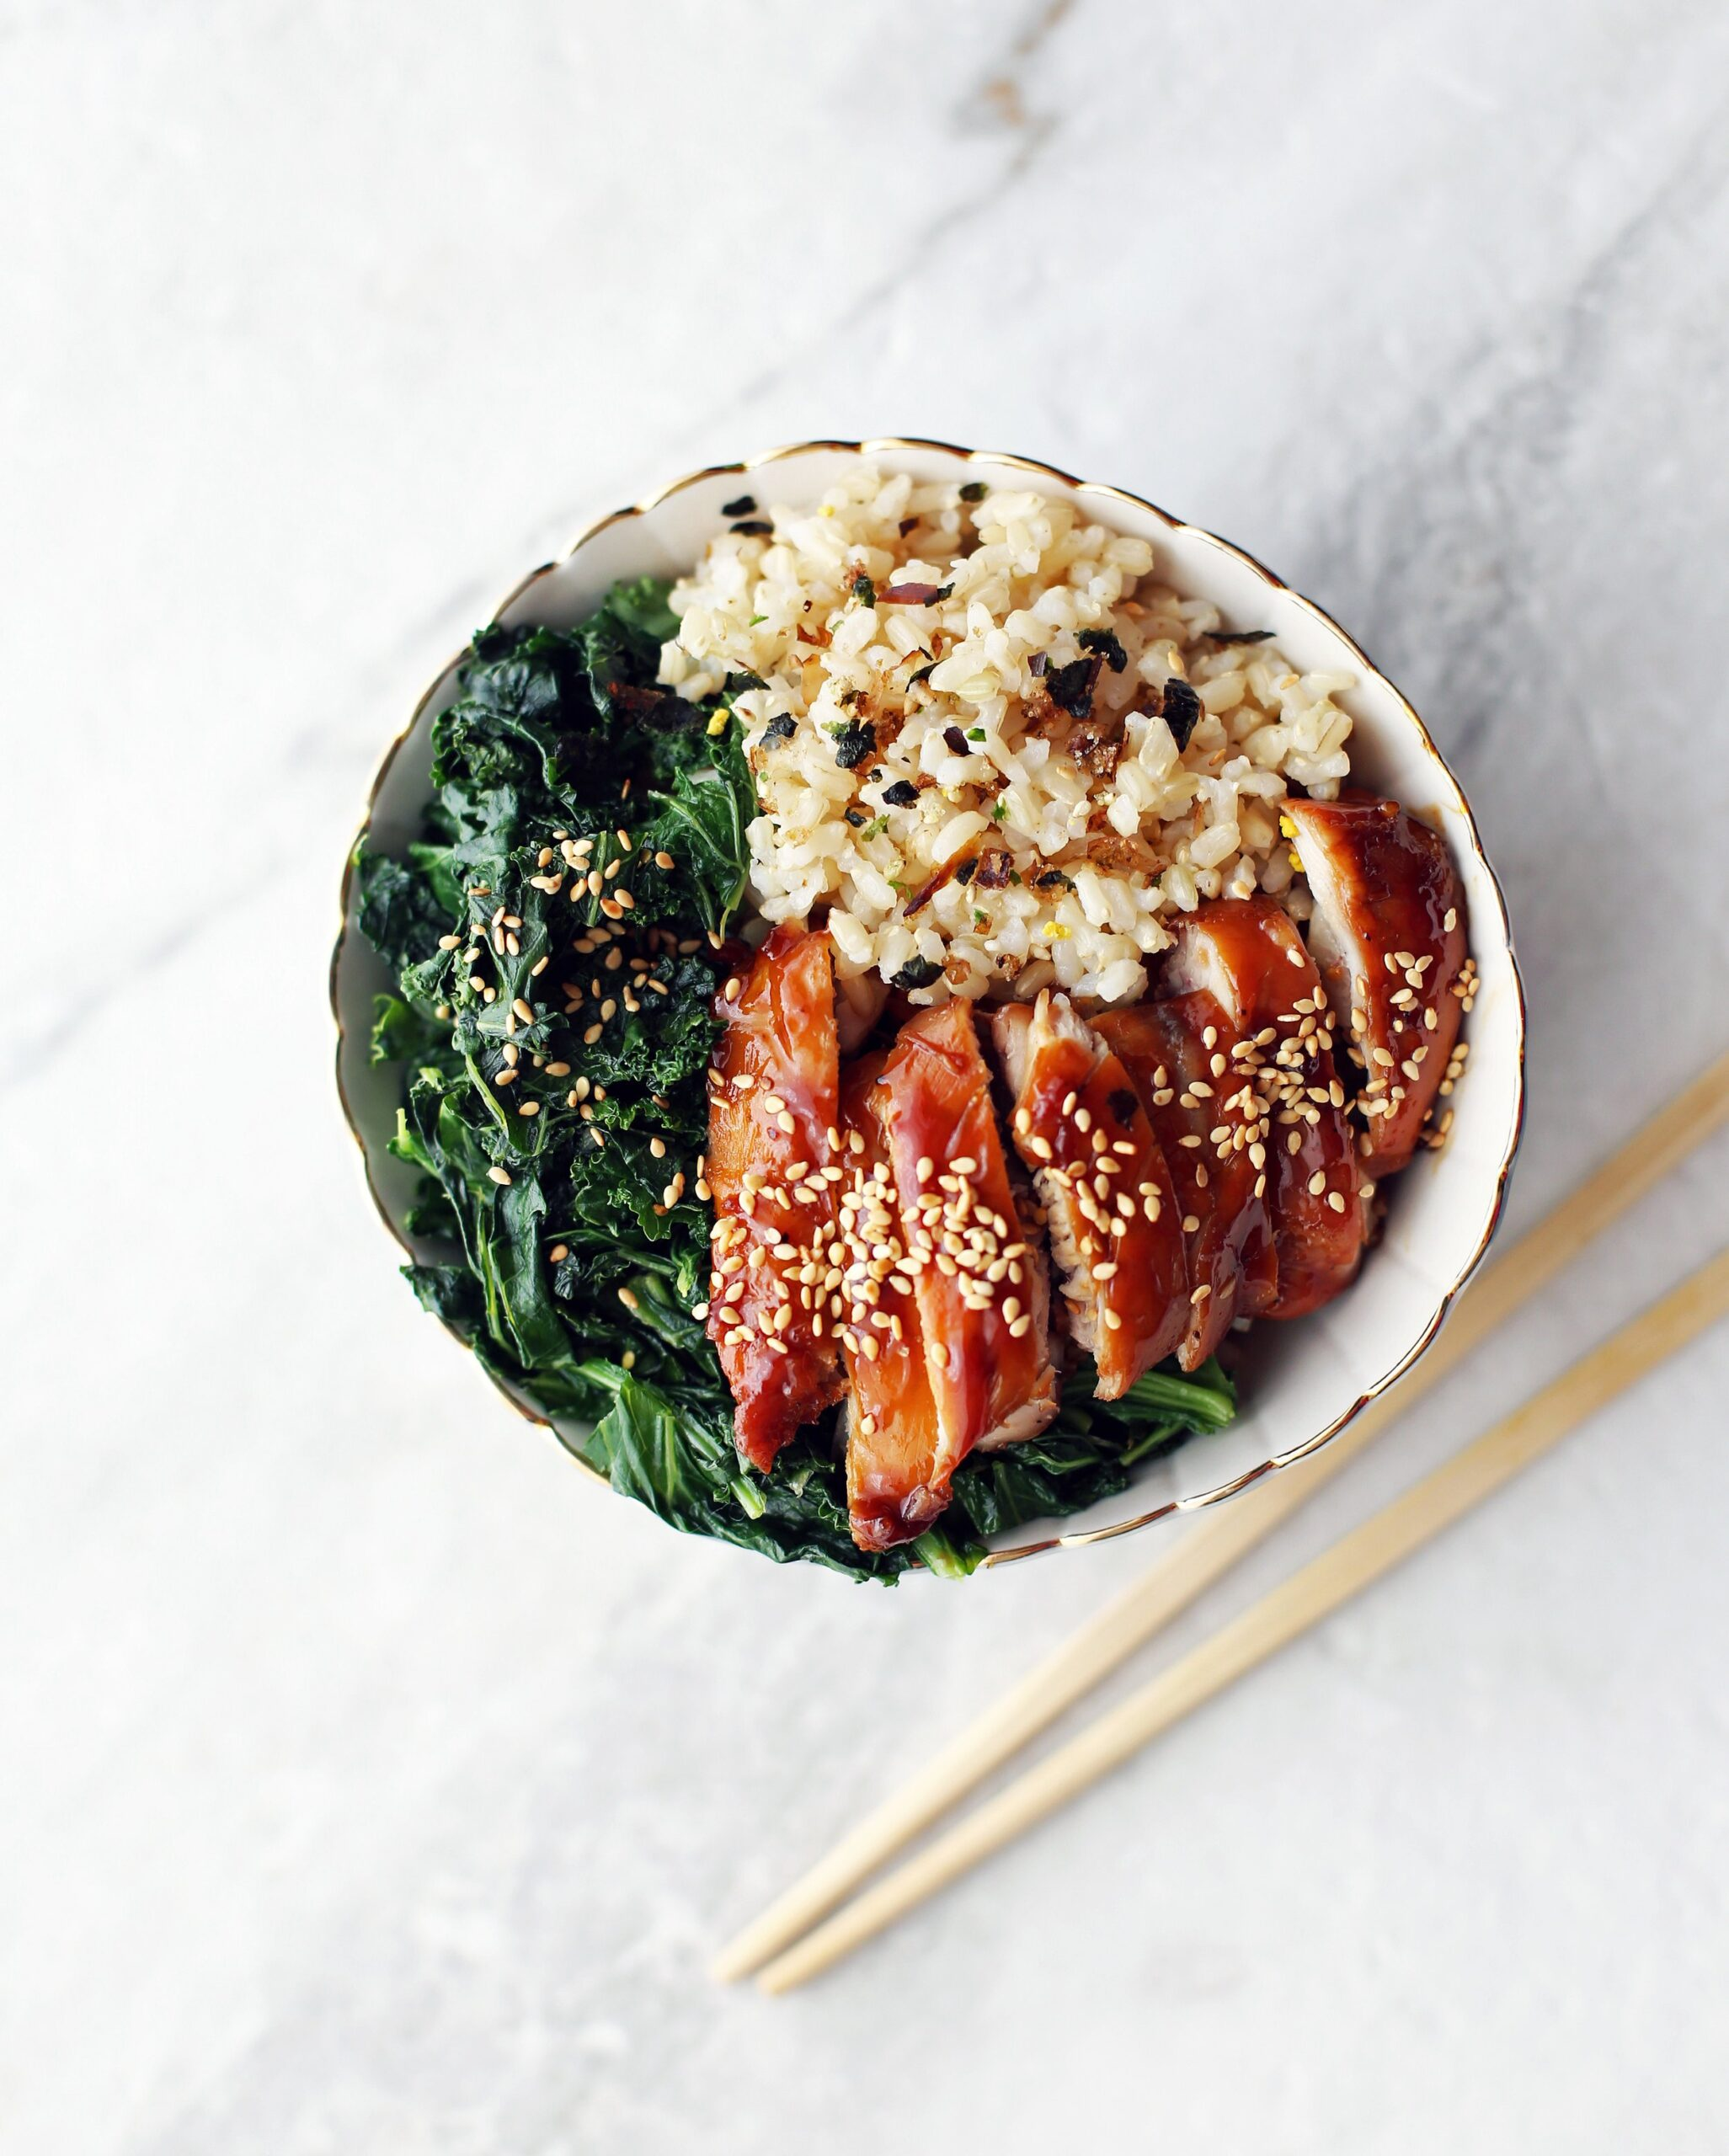 Teriyaki Chicken Rice Bowls with Garlicky Kale